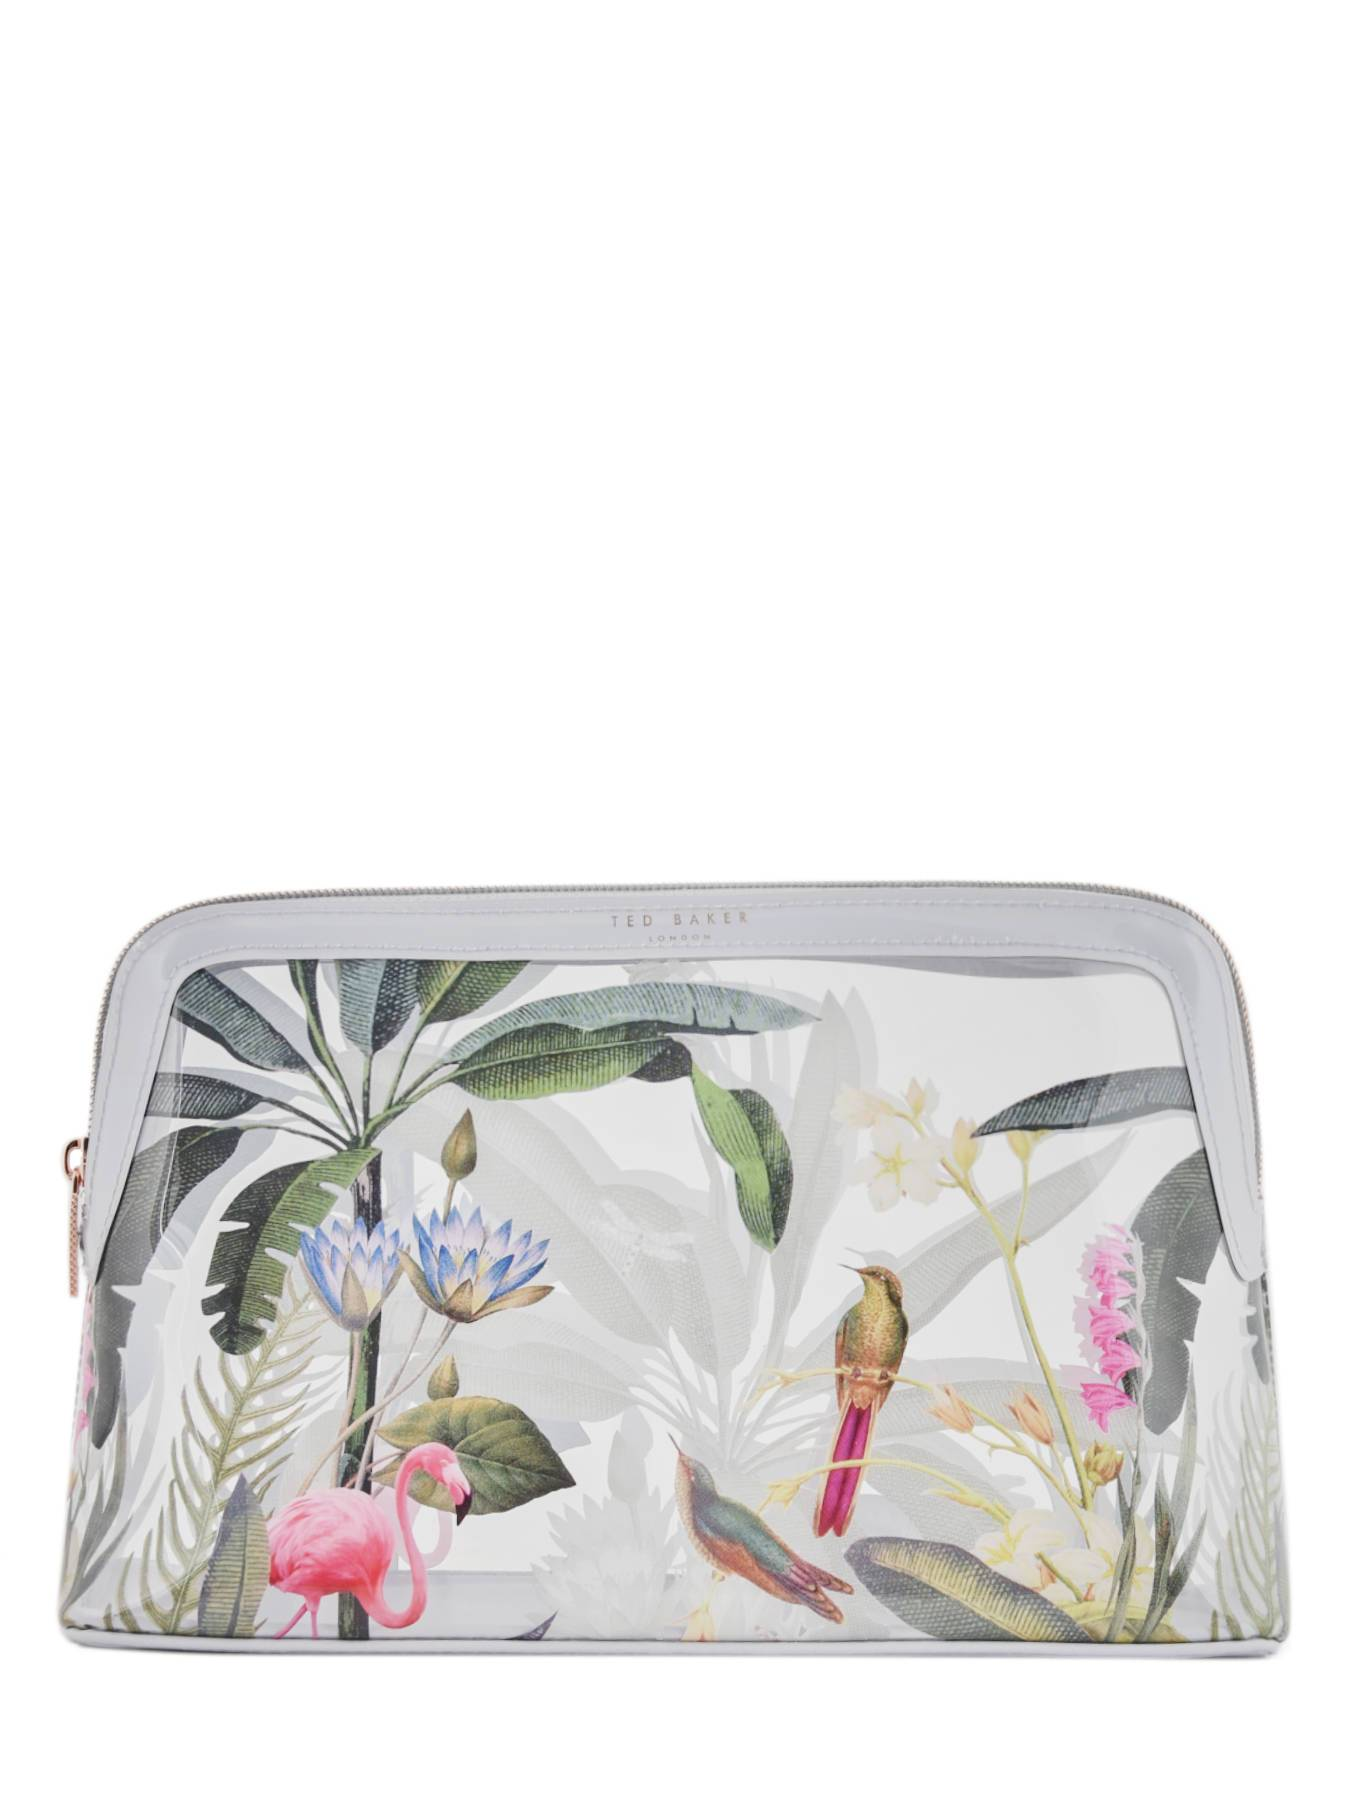 TED BAKER Trousse Cosmétique Iconic Ted Baker Multicolore